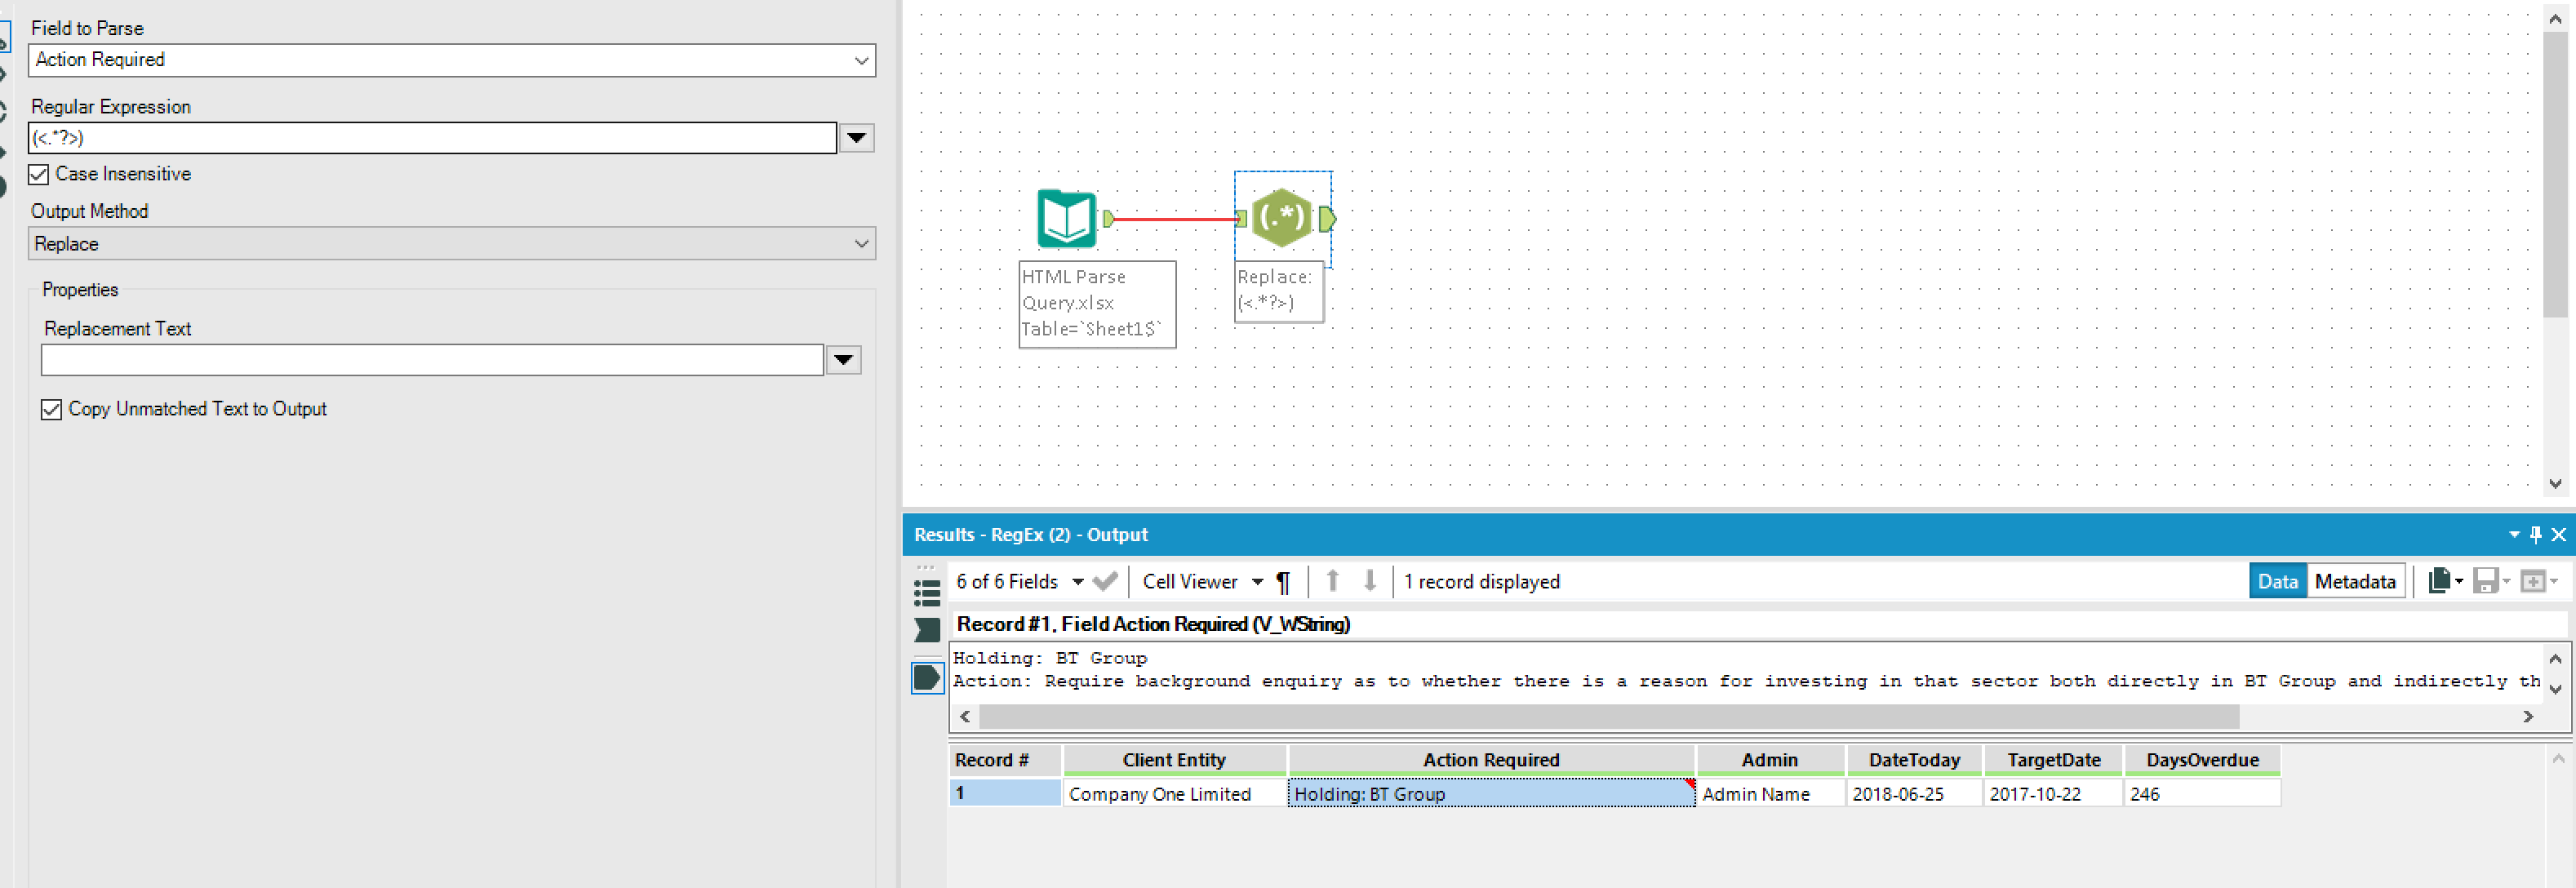 Solved: HTML Parse Query - Alteryx Community